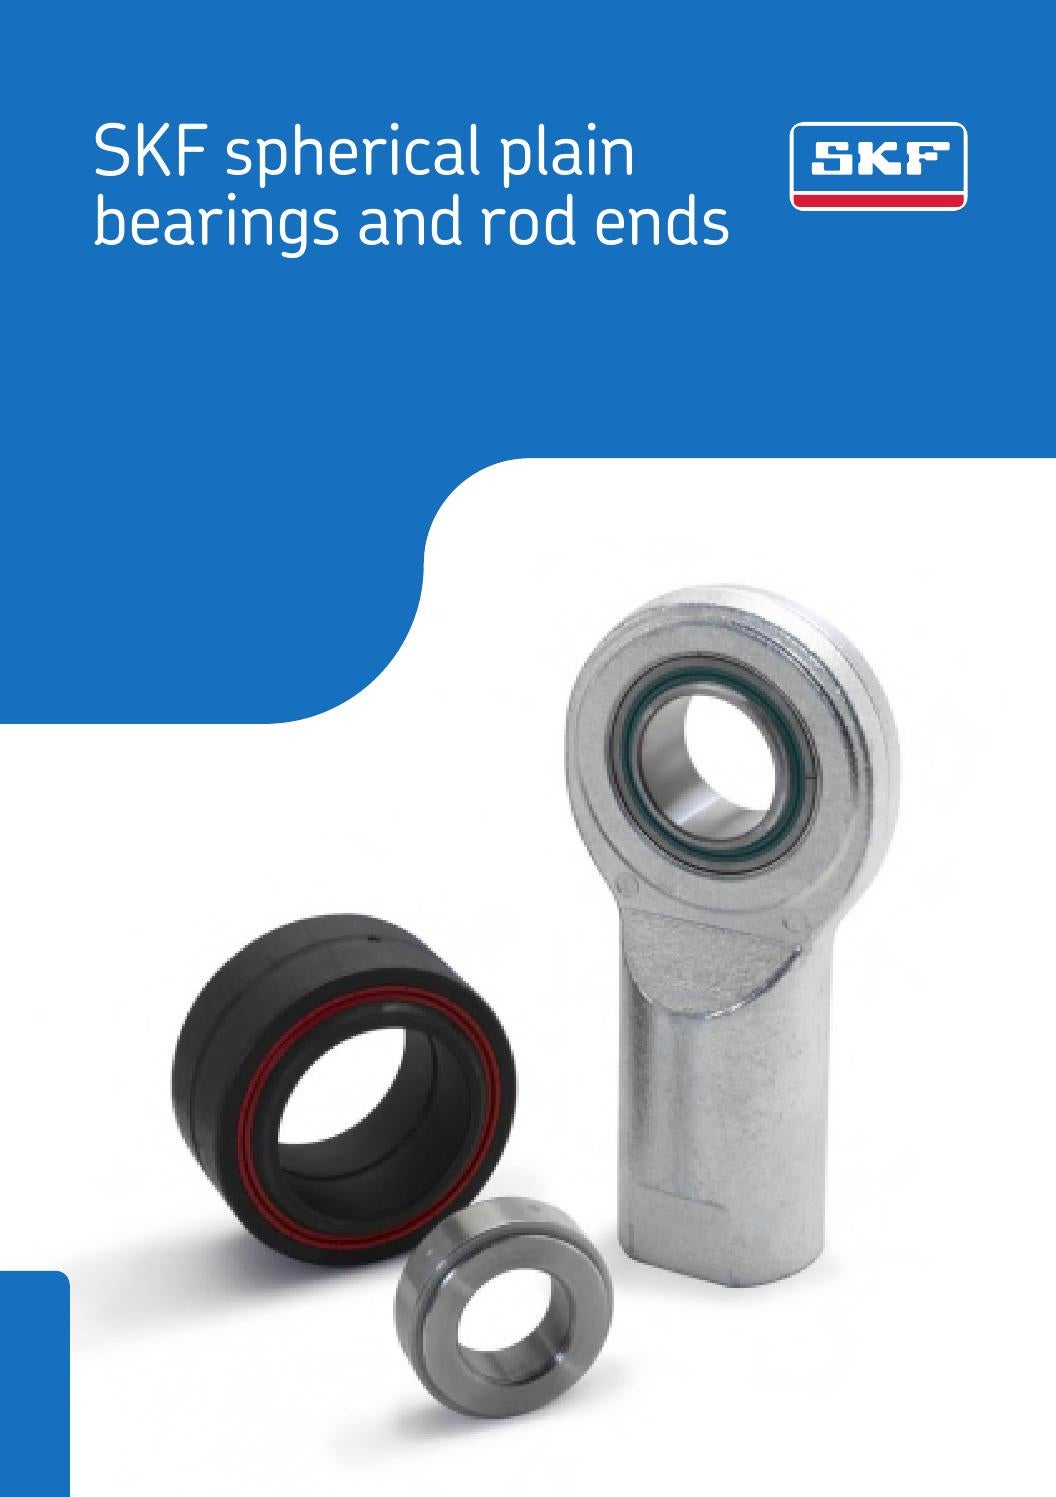 SKF 240-2C//L Roller Chain Connecting Link ANSI